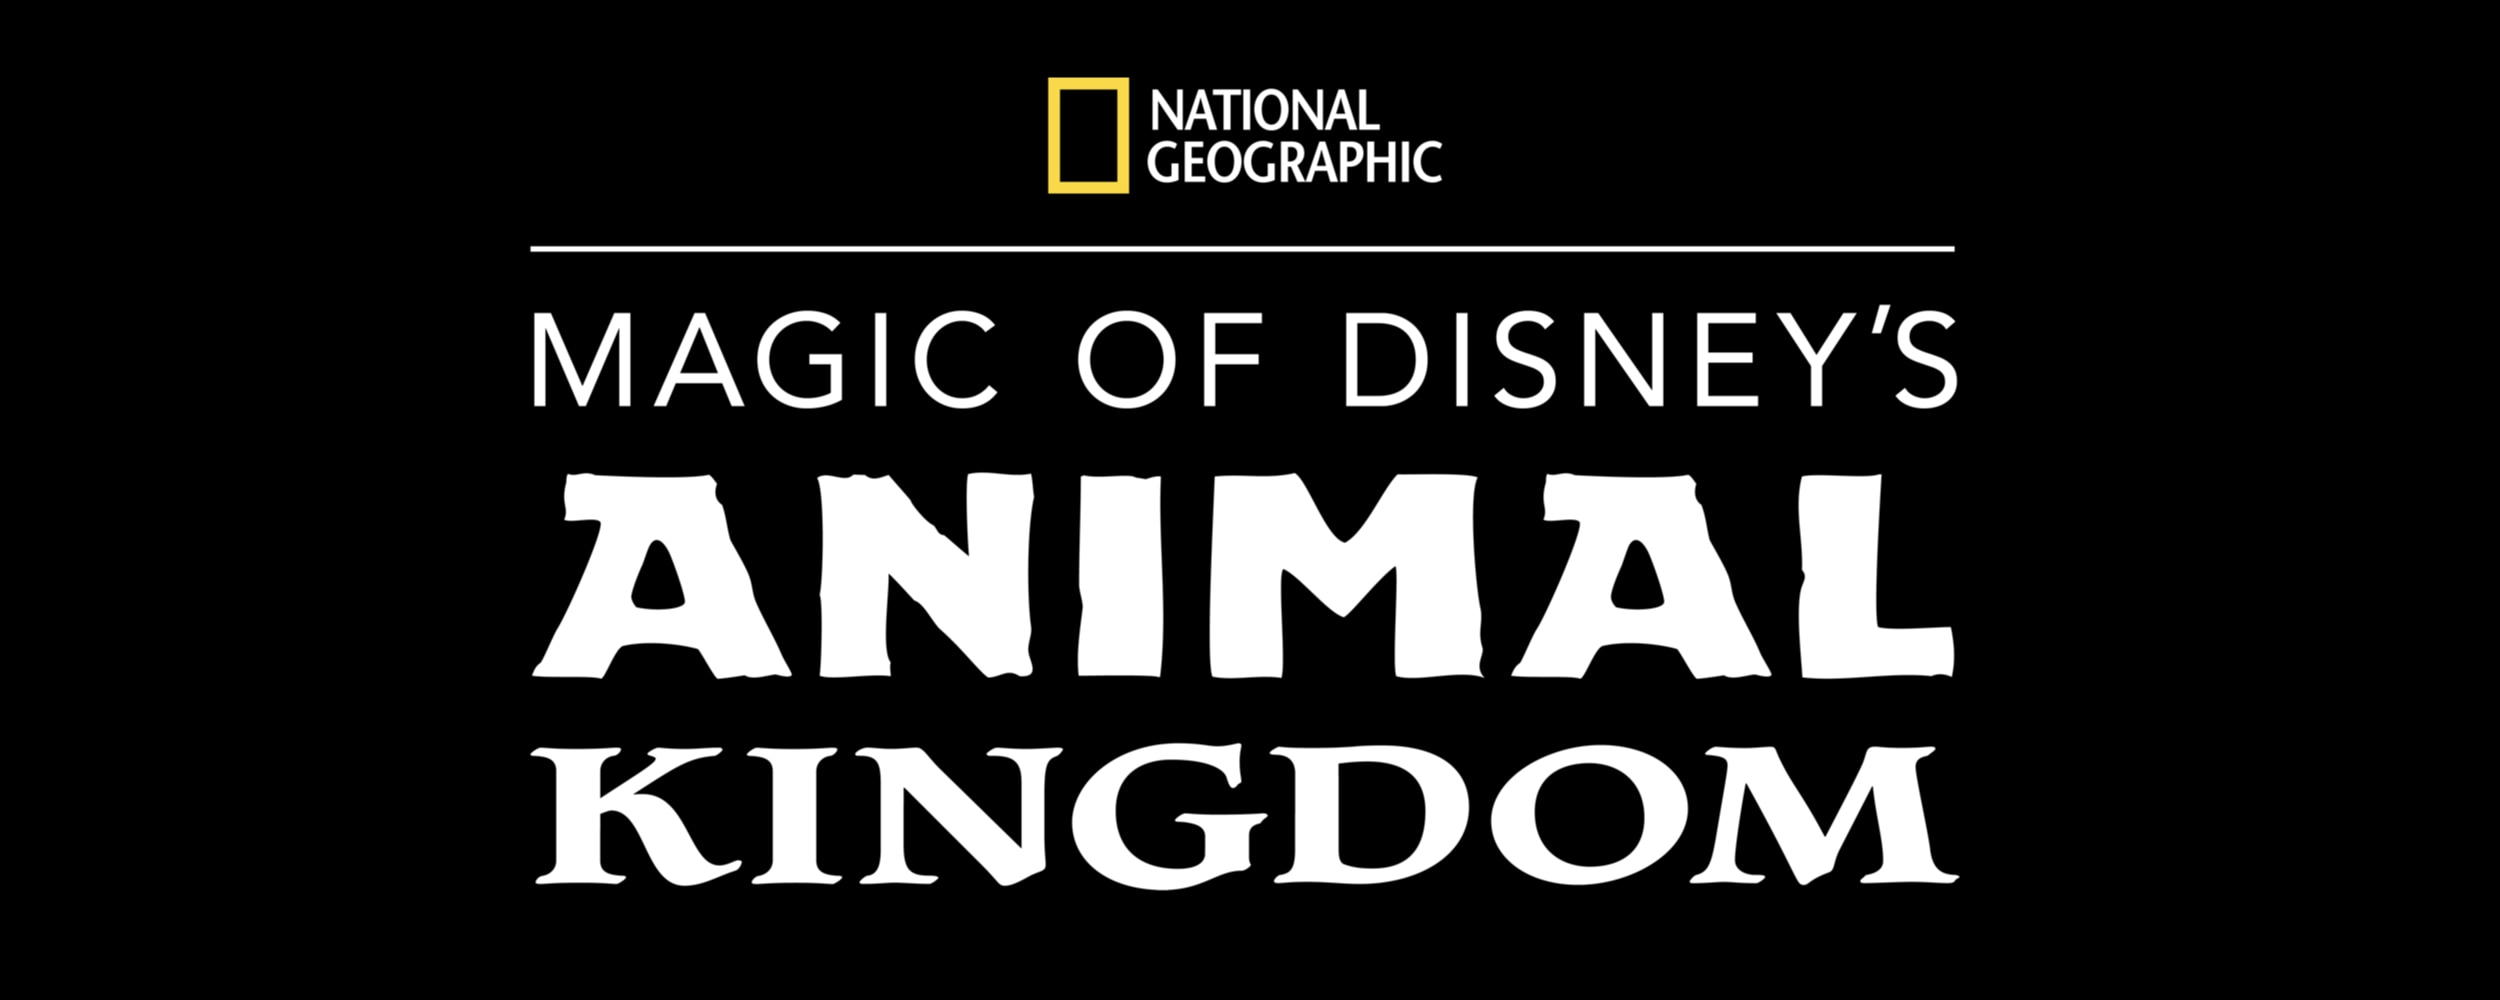 Magic of Disney's Animal Kingdom Media Kit